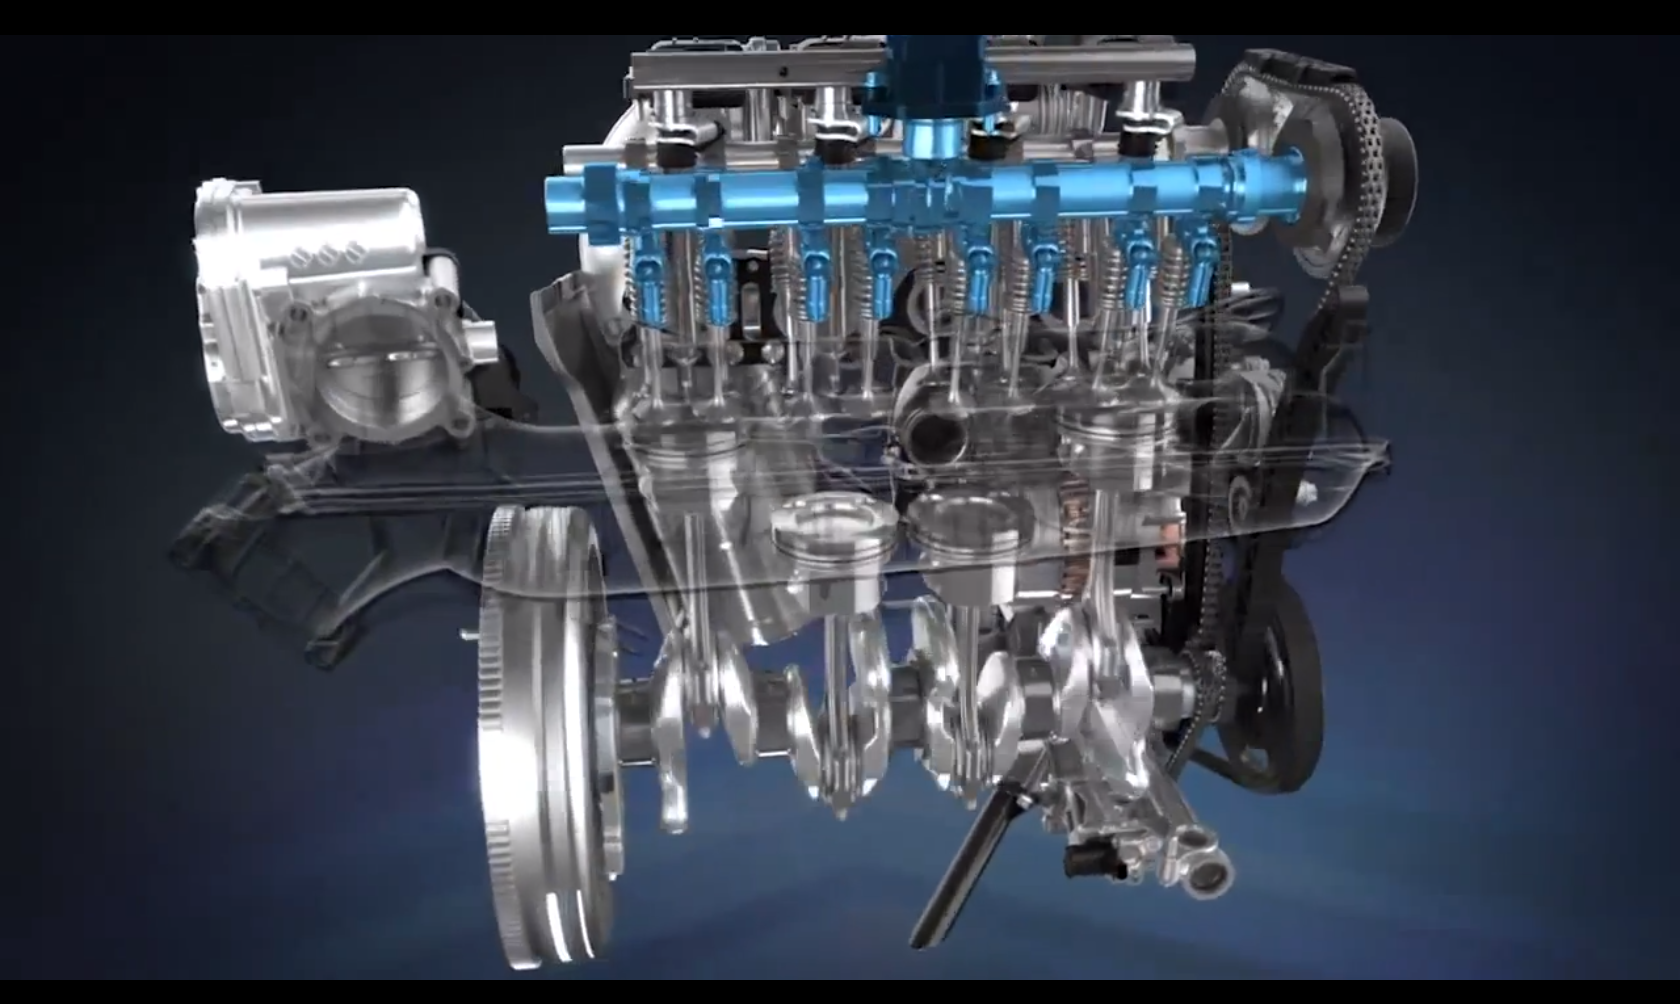 How The Camtronic System Works On Mercedes Benz Engines